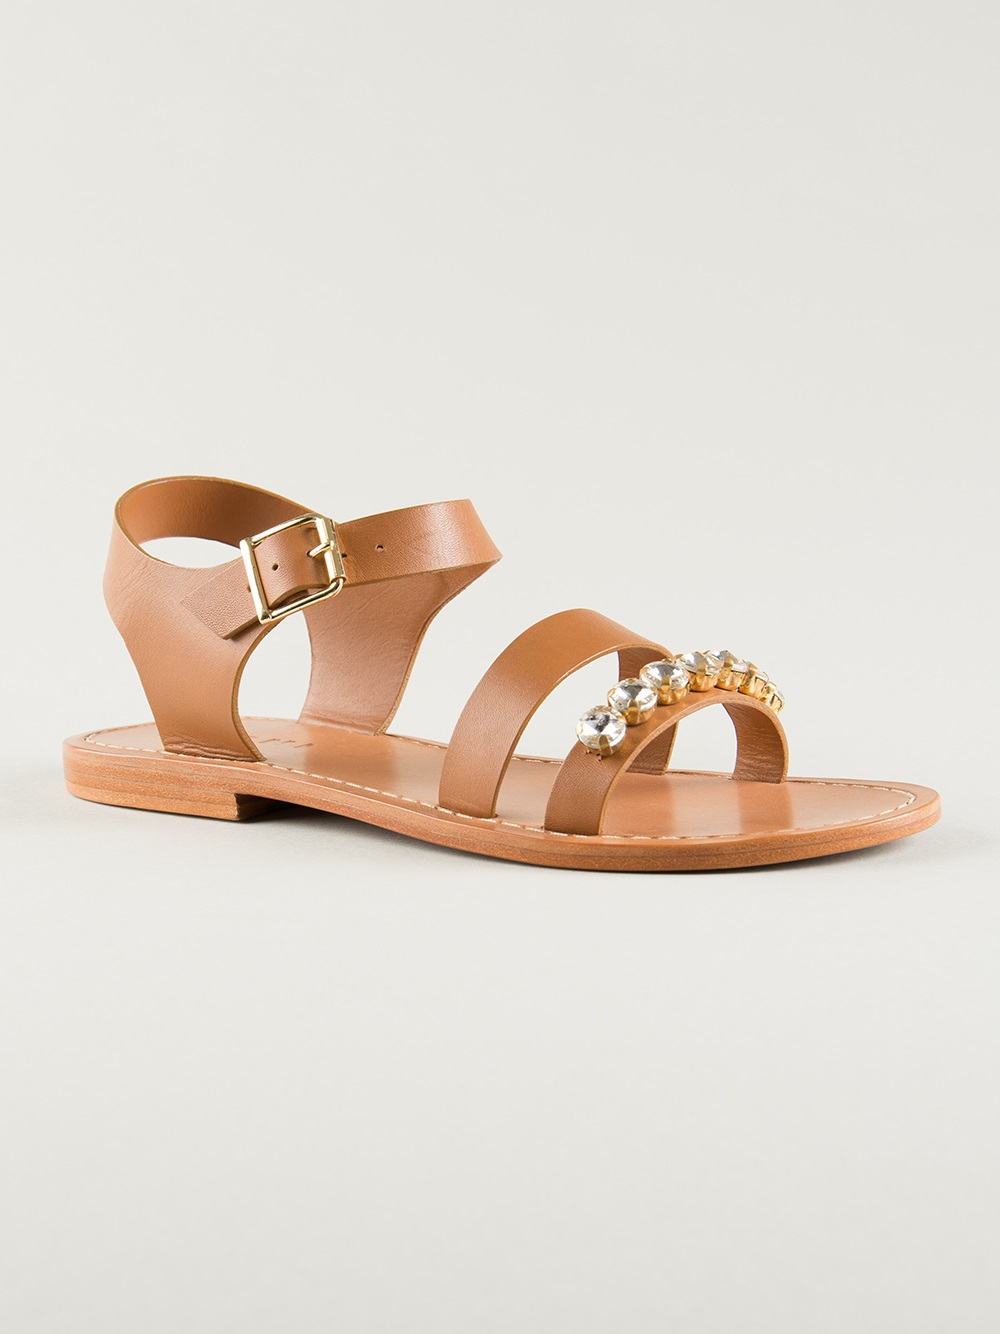 5ad0c411b Lyst - Marni Embellished Sandals in Brown